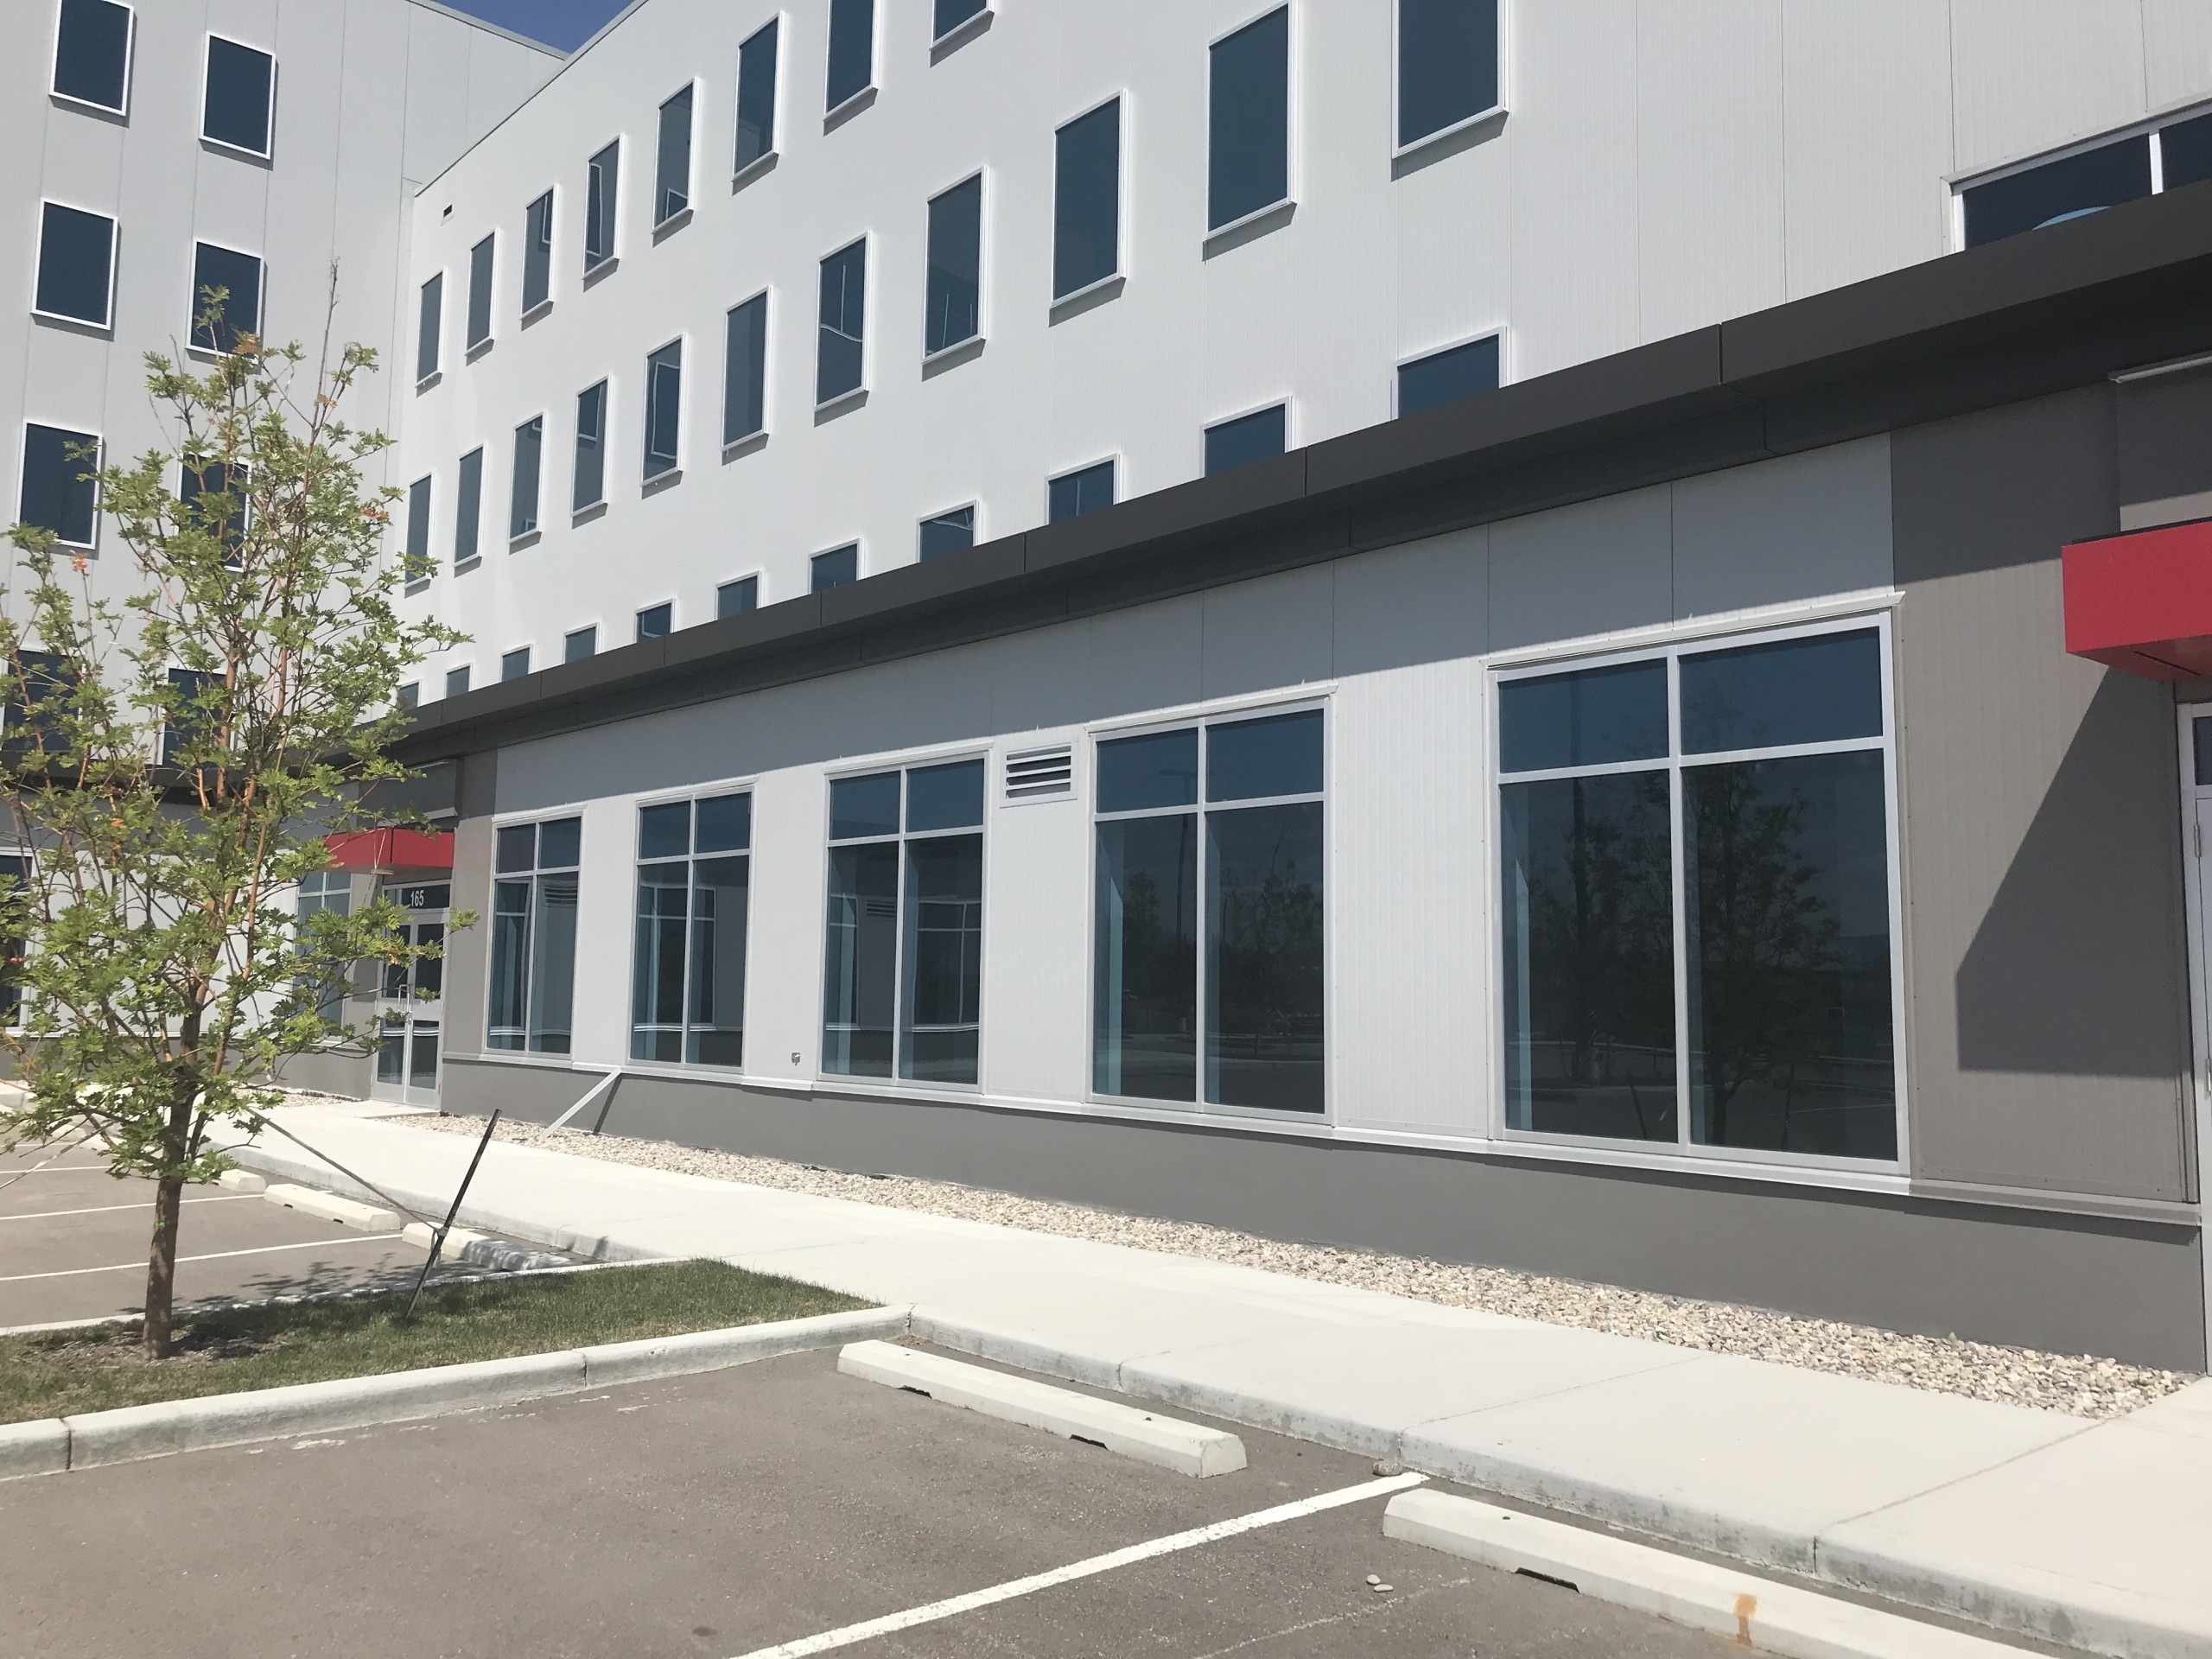 Exterior photo of an existing modern main floor commercial space with grey colour scheme and parking lot in front.